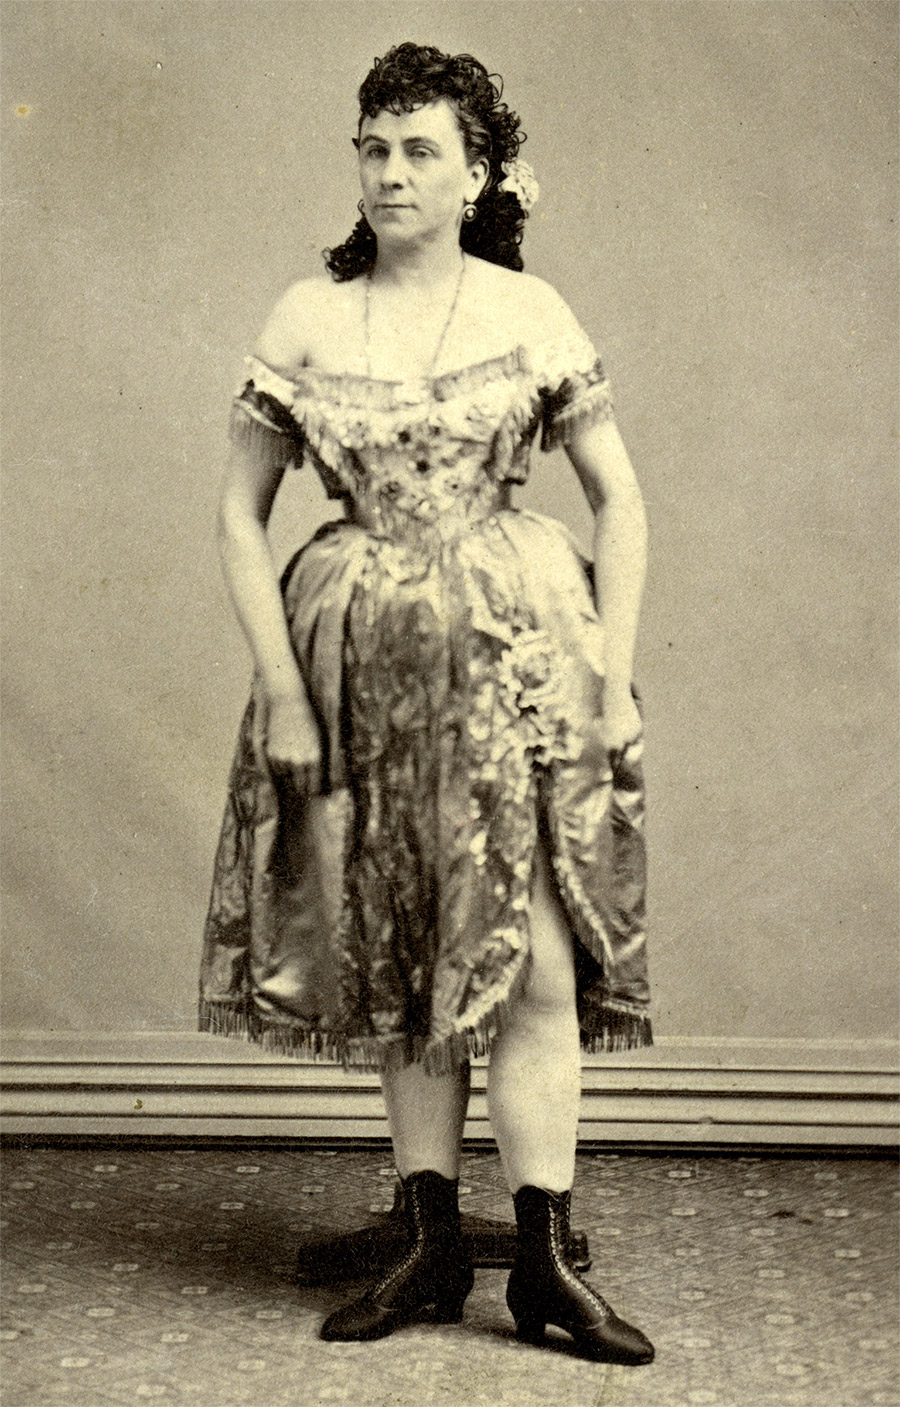 Fanny Hanks, Virginia City, 1866.